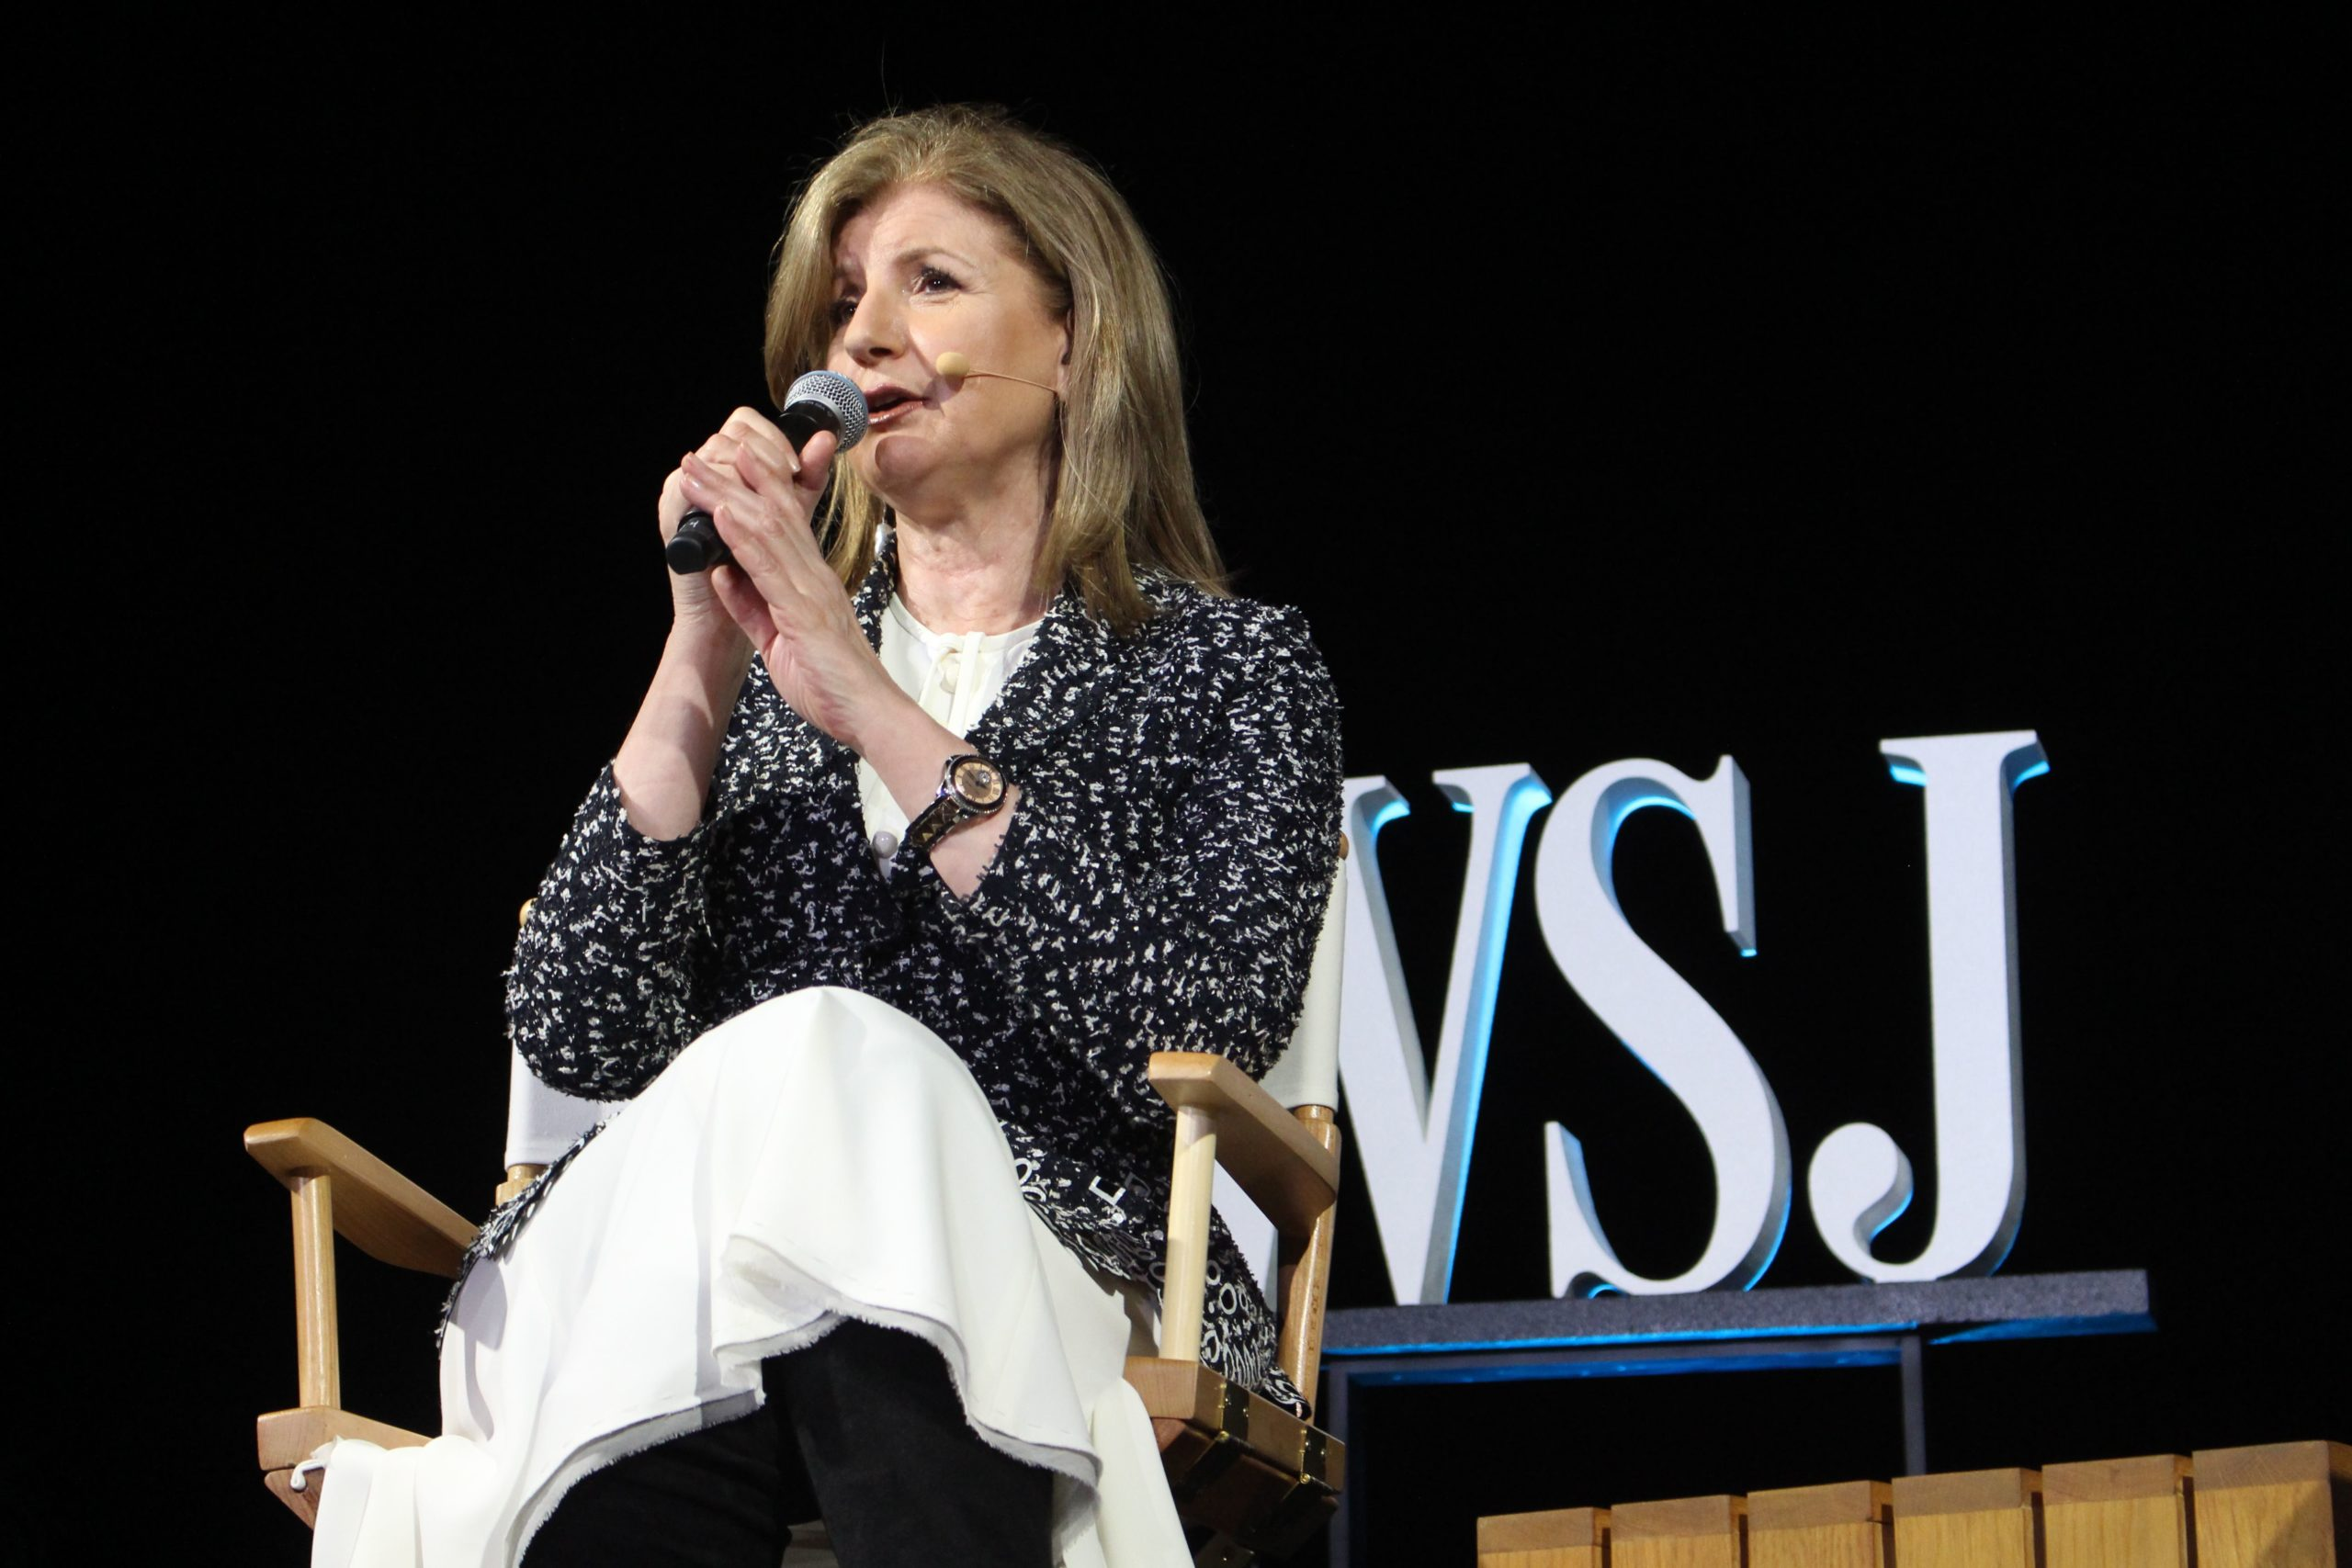 Uber board member Arianna Huffington speaks at a WSJD Live conference in Laguna Beach, California, on October 16, 2017. (Photo by GLENN CHAPMAN/AFP via Getty Images)